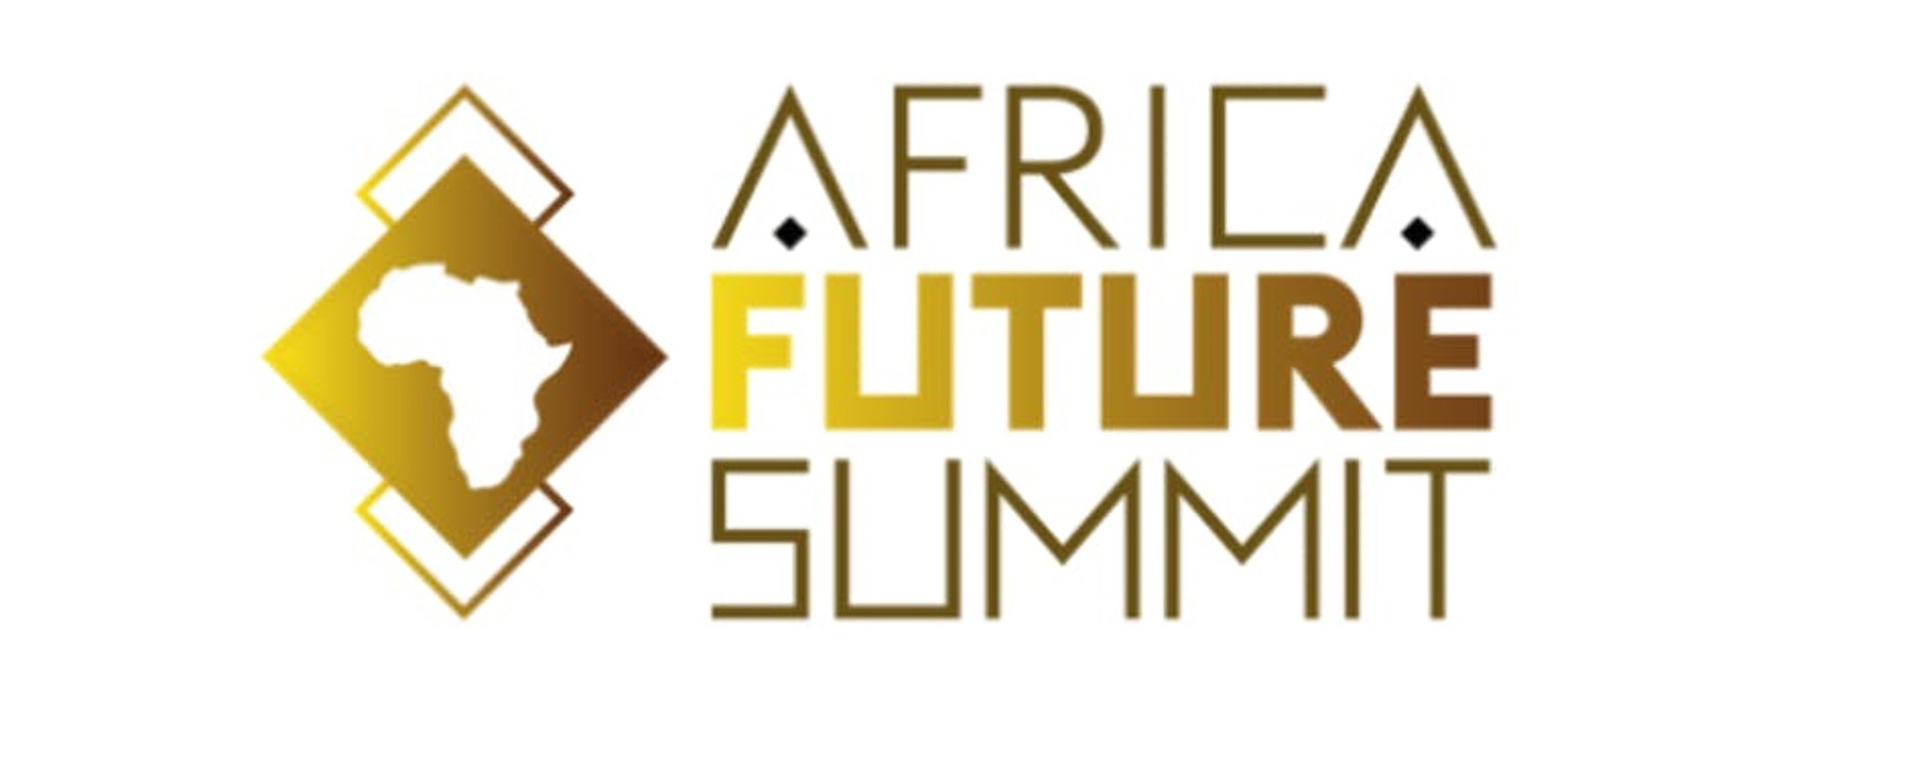 Africa Future Summit - Africa Future Summit 2019 Movemeback African event cover image